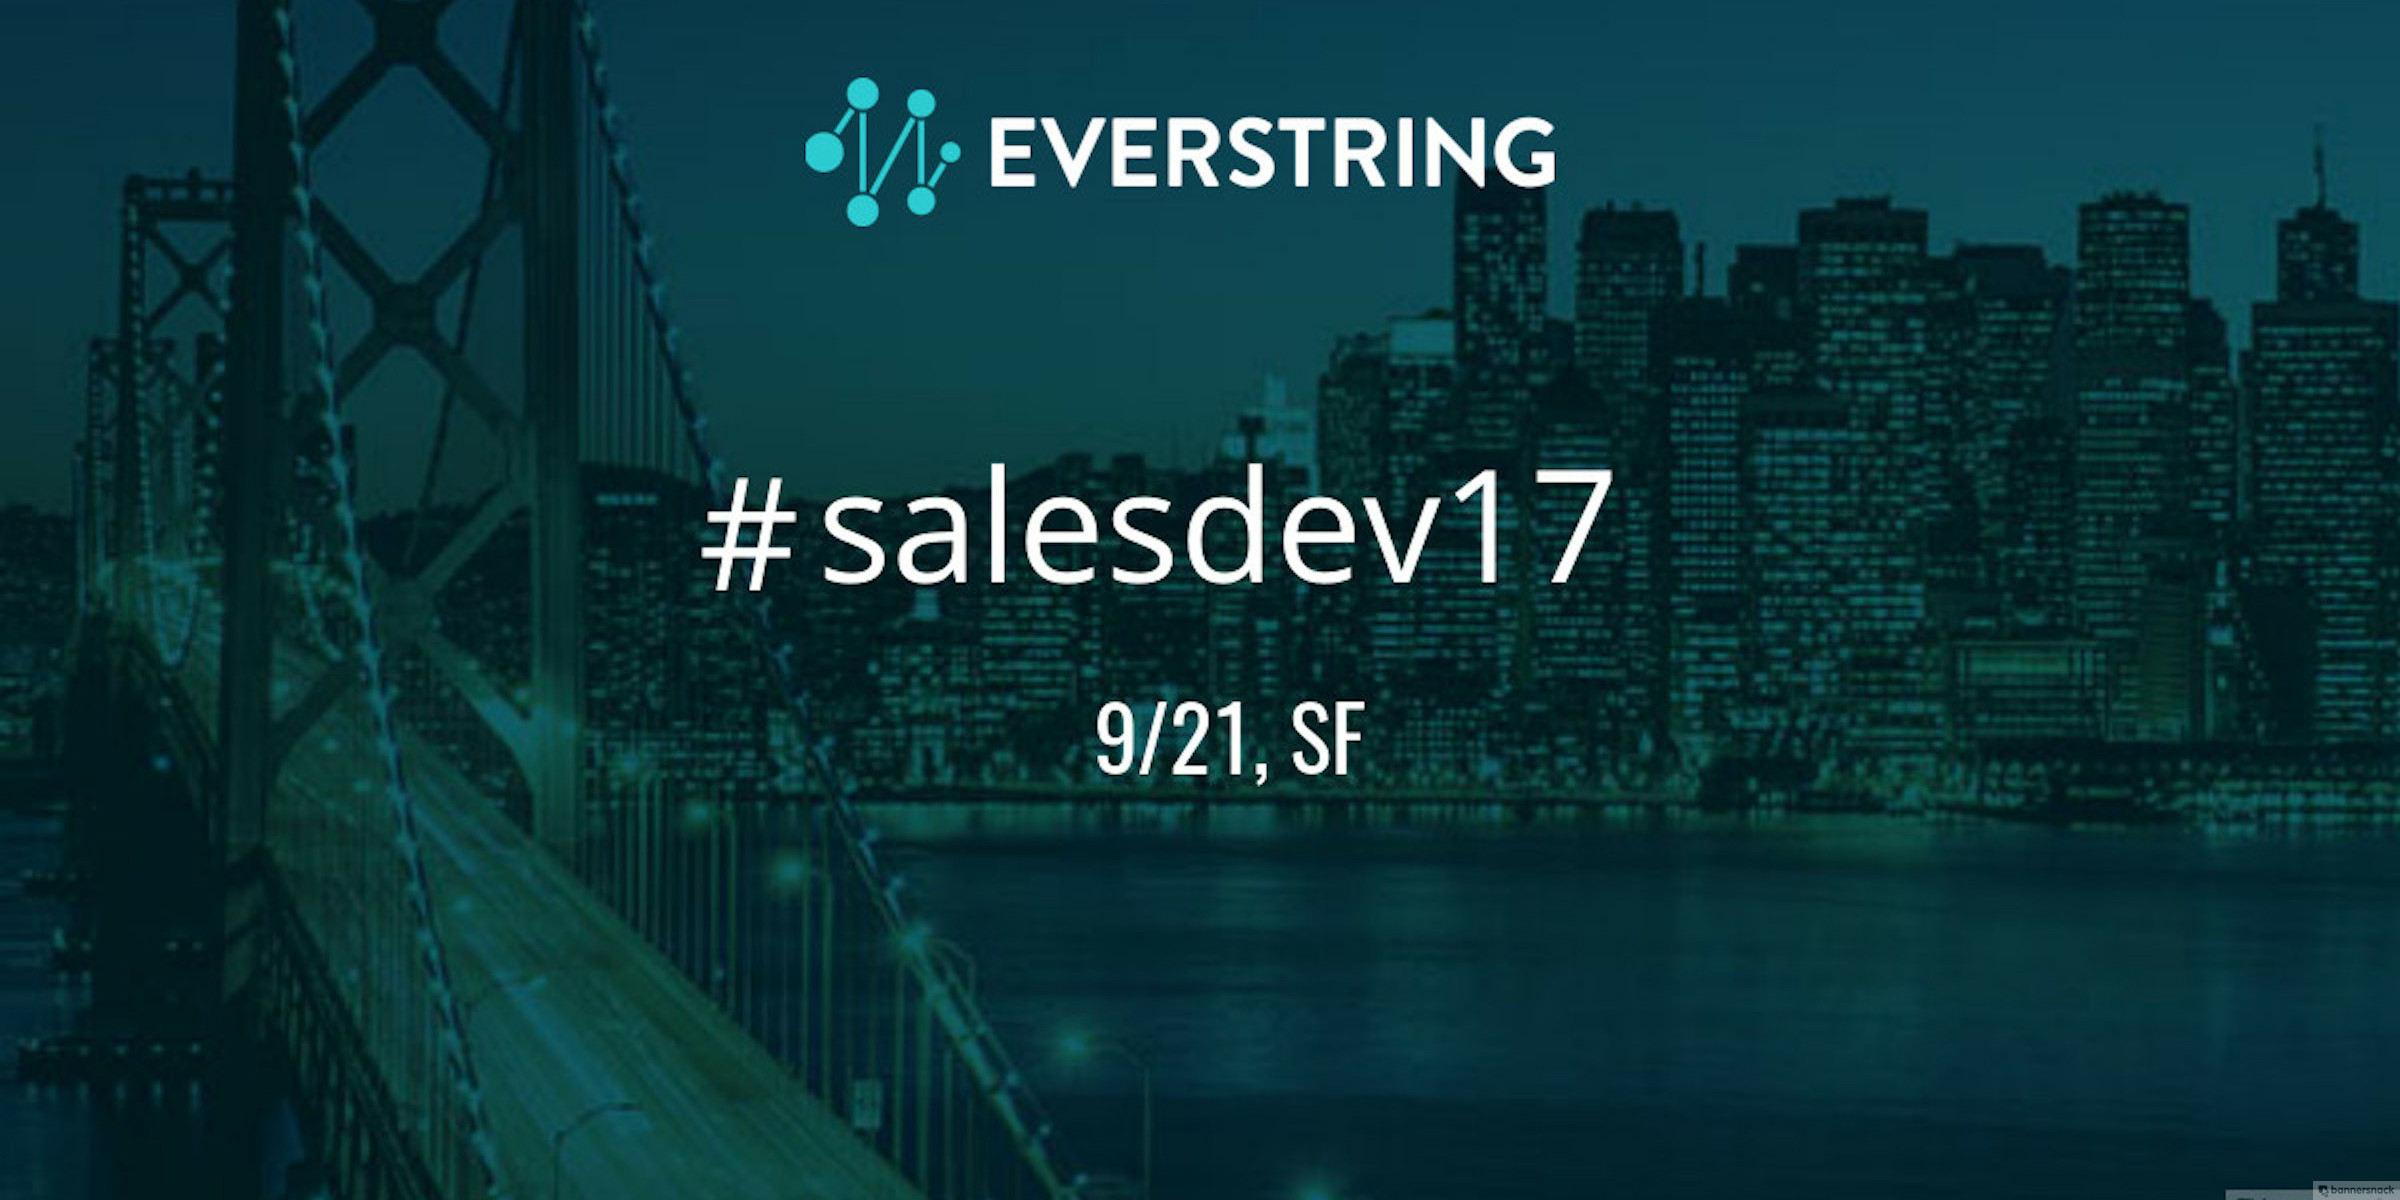 Join the Best & Brightest in Sales Development at the First-Ever #SalesDev17!